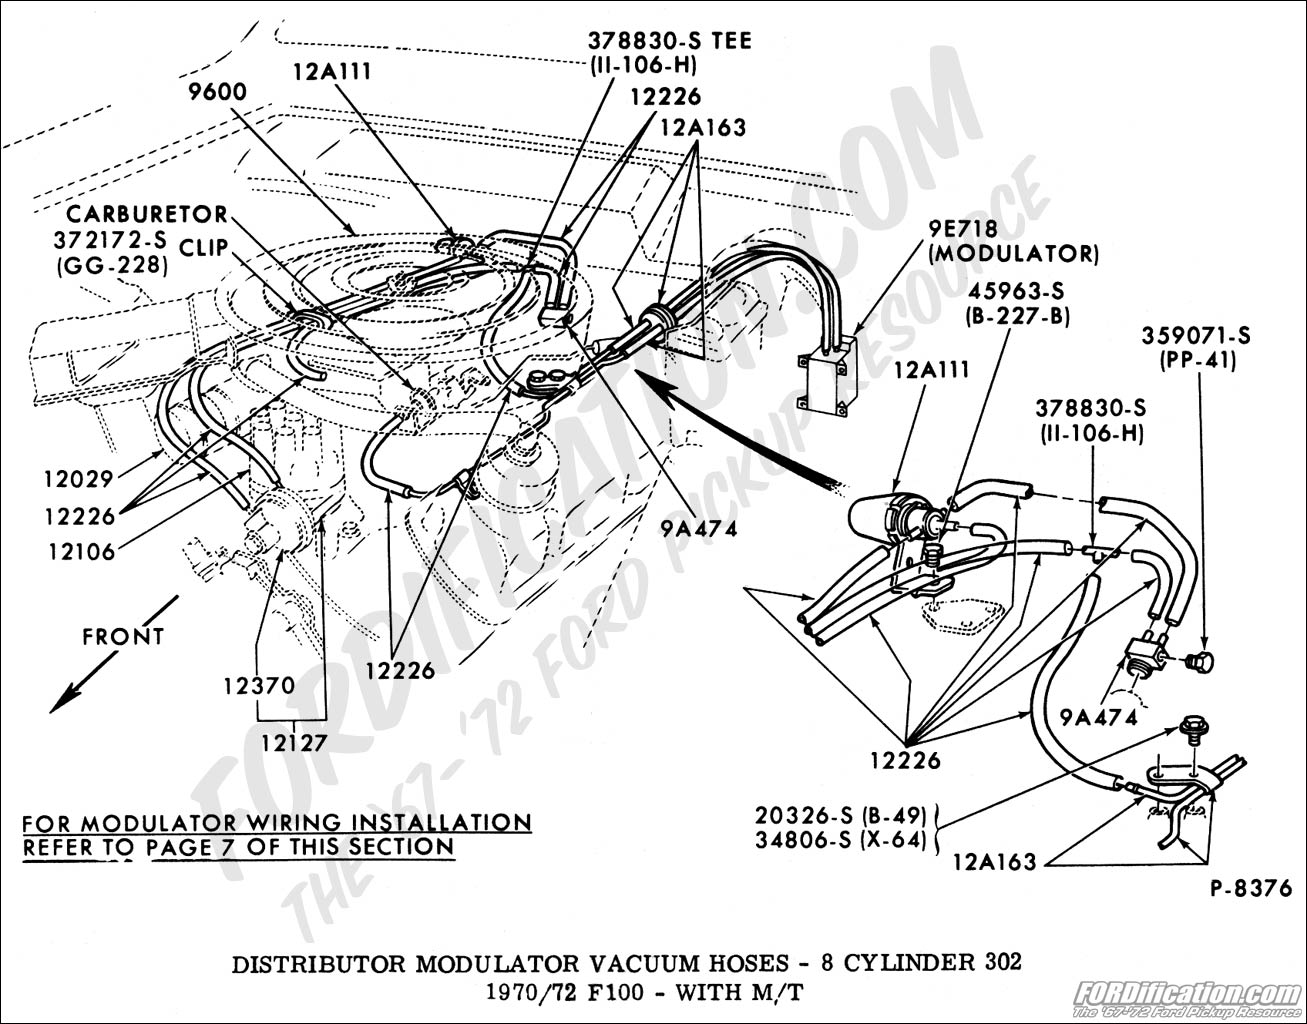 Ford Flex 3 5 2006 Specs And Images further Bw4406 in addition Mazda Mpv 3 0 1985 Specs And Images together with Brake Line Replacement 33622 also Schematics i. on 2003 ford f150 suspension diagram